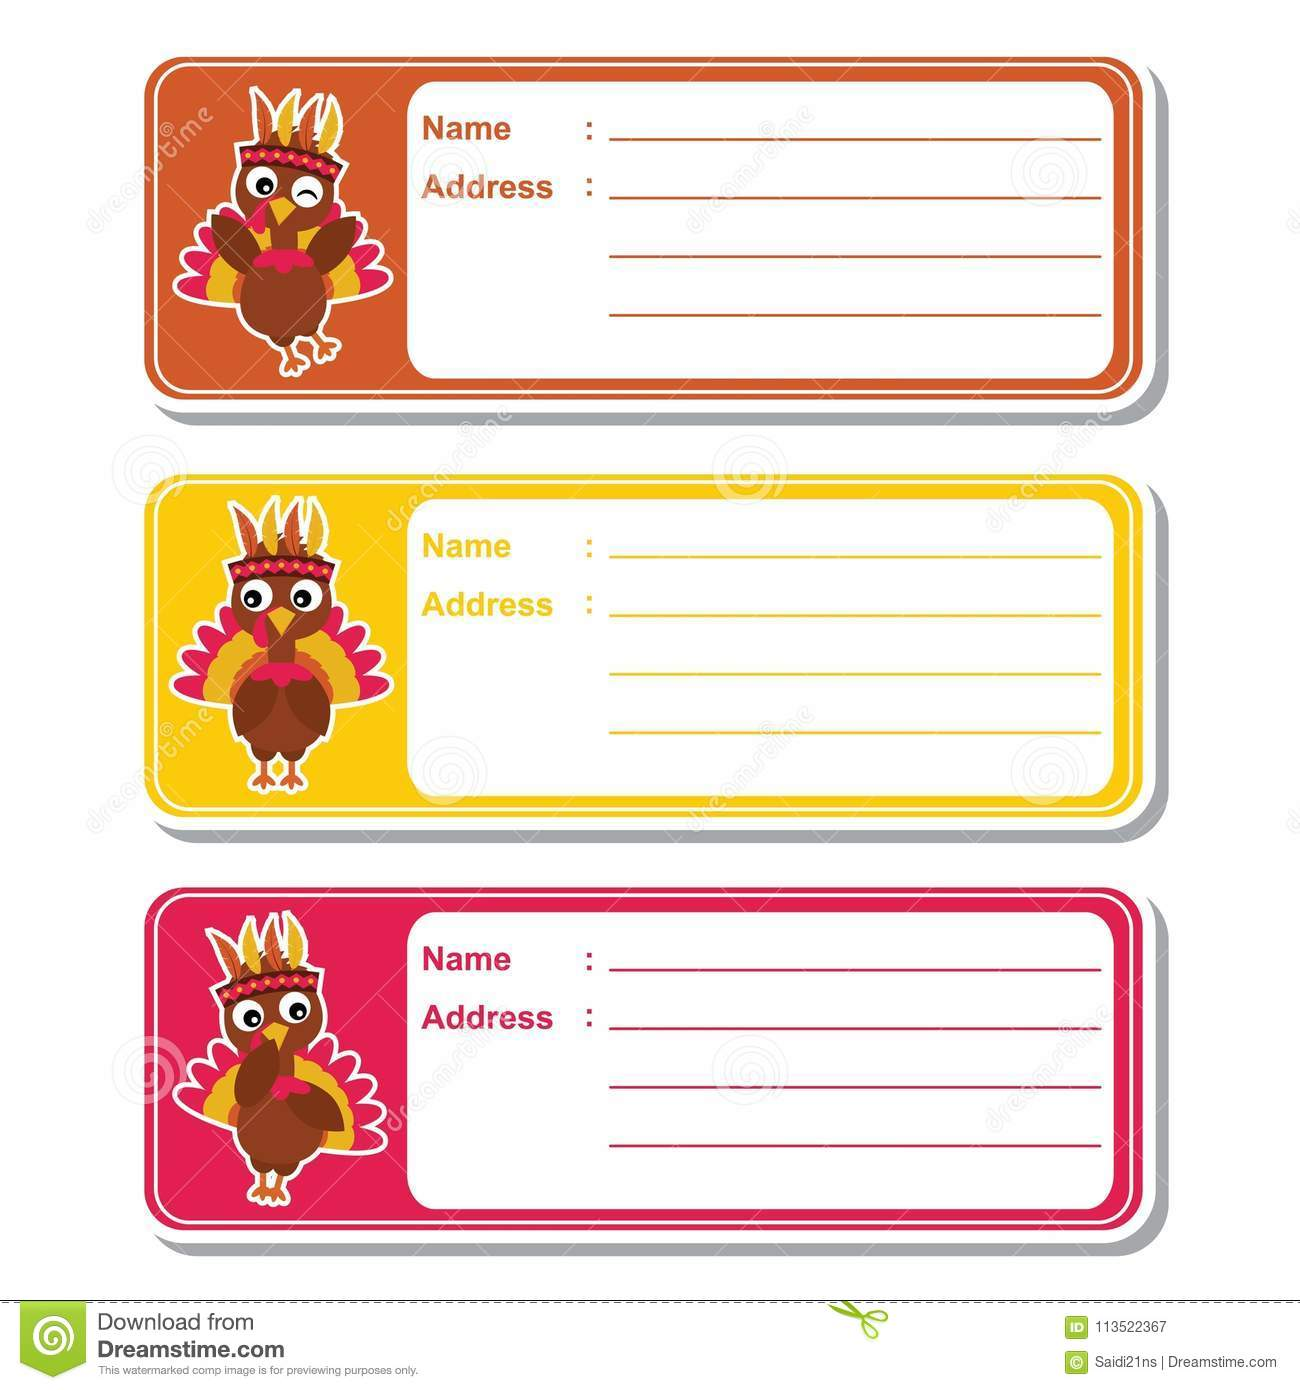 cute turkeys on colorful background suitable for kid address label